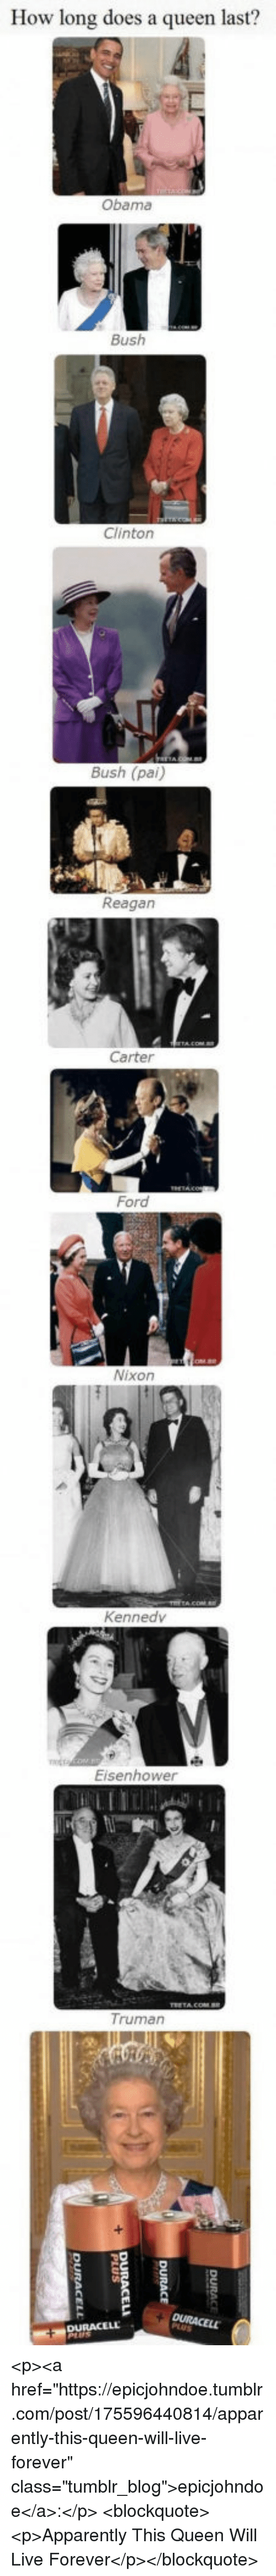 "eisenhower: How long does a queen last?  Obama  Bush  Clinton  Bush (pai)  Reagan  Carter  Ford  Nixon  Kennedv  Eisenhower  Truman <p><a href=""https://epicjohndoe.tumblr.com/post/175596440814/apparently-this-queen-will-live-forever"" class=""tumblr_blog"">epicjohndoe</a>:</p>  <blockquote><p>Apparently This Queen Will Live Forever</p></blockquote>"